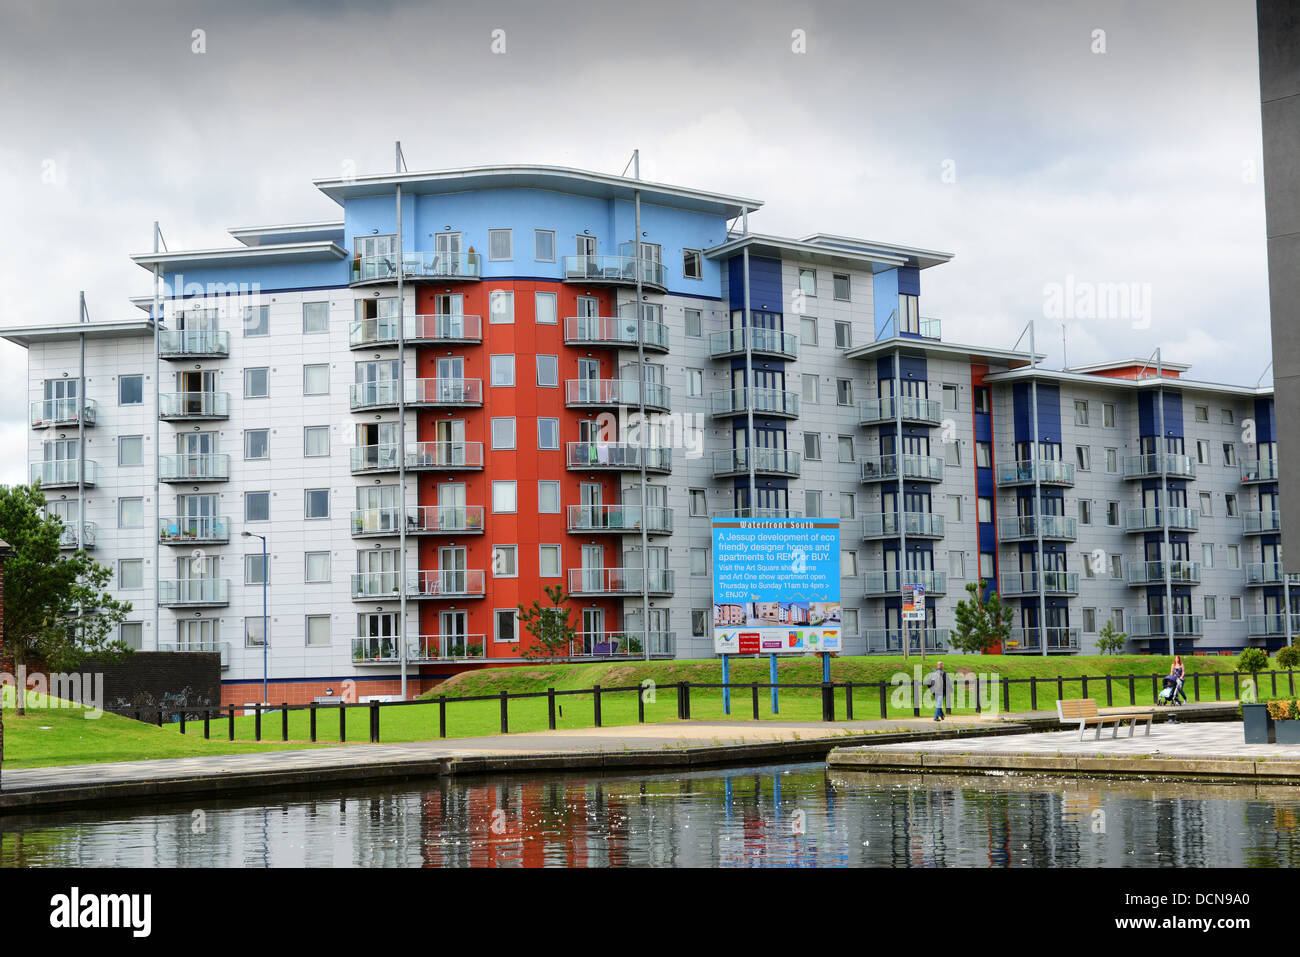 Eco friendly designer apartments in Walsall, West Midlands UK - Stock Image